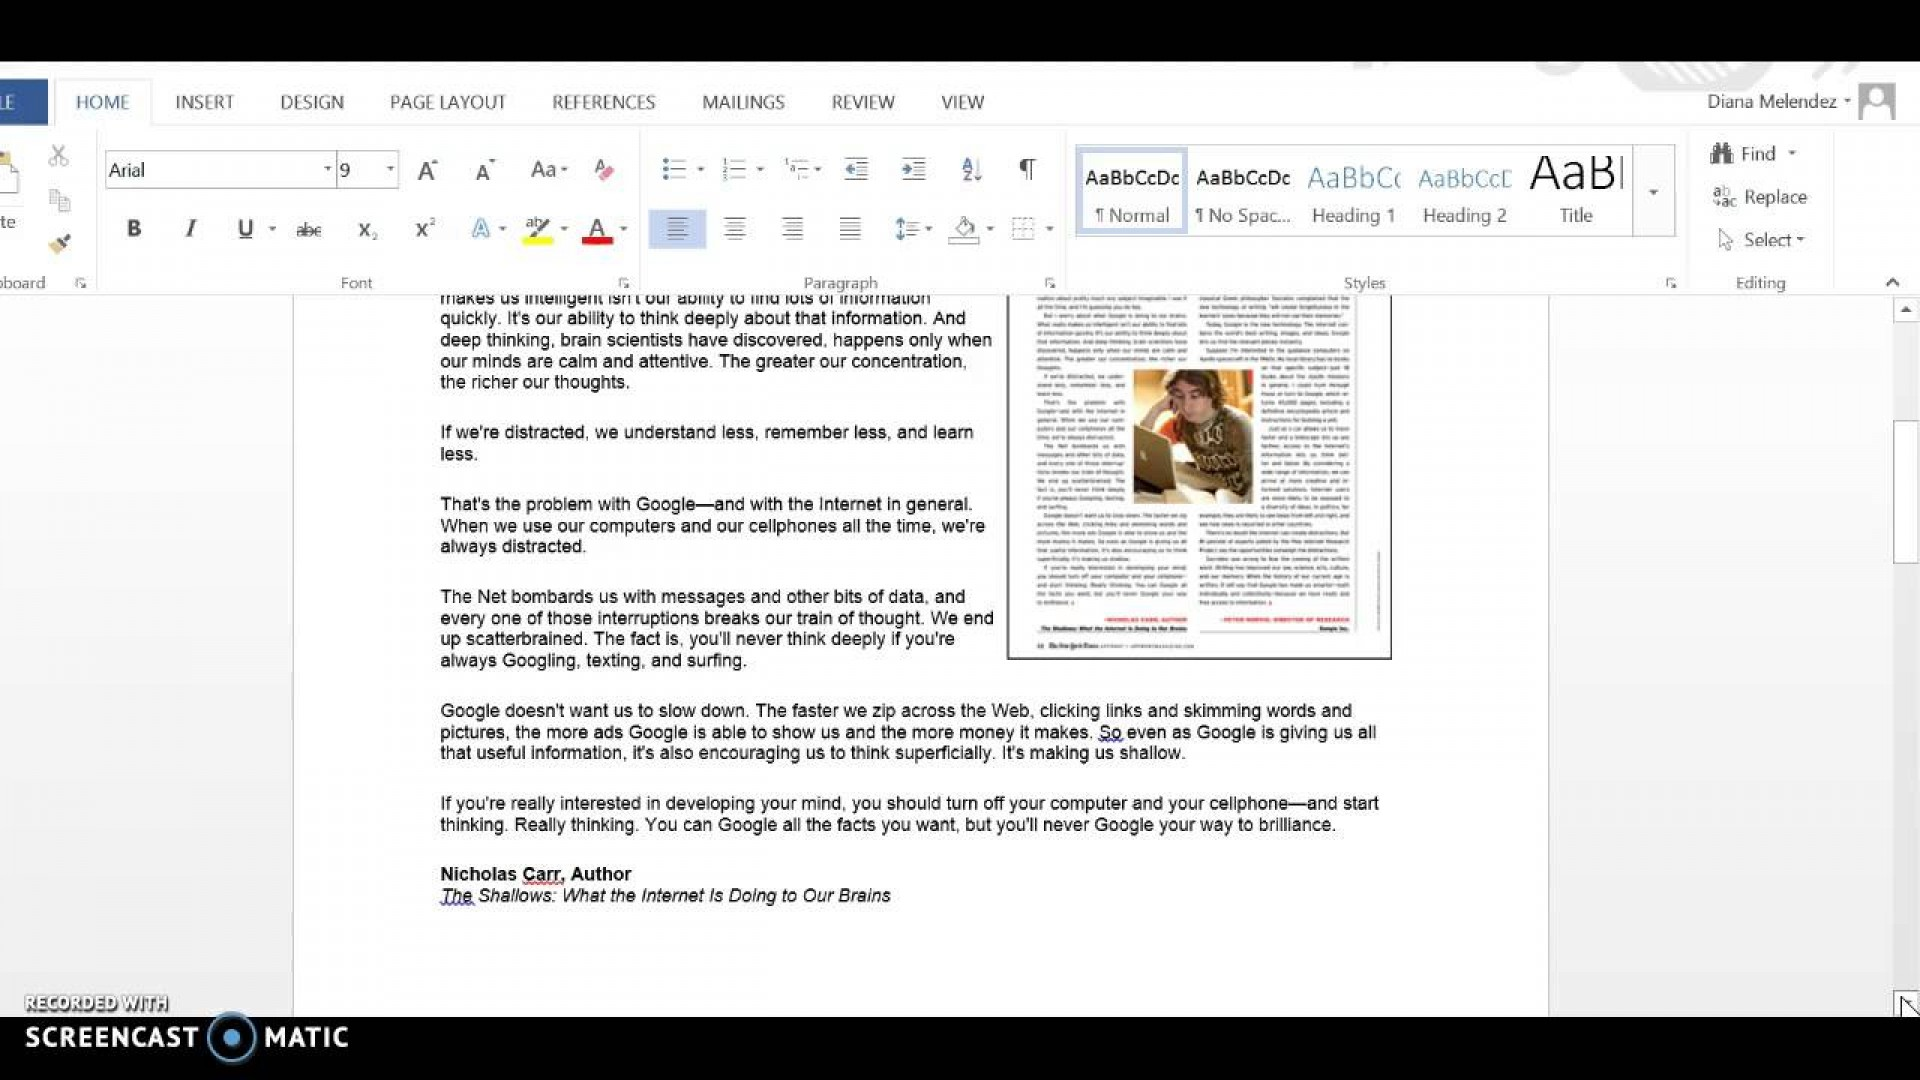 008 Essay On Is Google Making Us Stupid Example Article Response To Summary Examples Of Analysis Persuasive About Topics Reasons Why Nicholas Carr Student 6th Archaicawful Audio And Pdf 1920